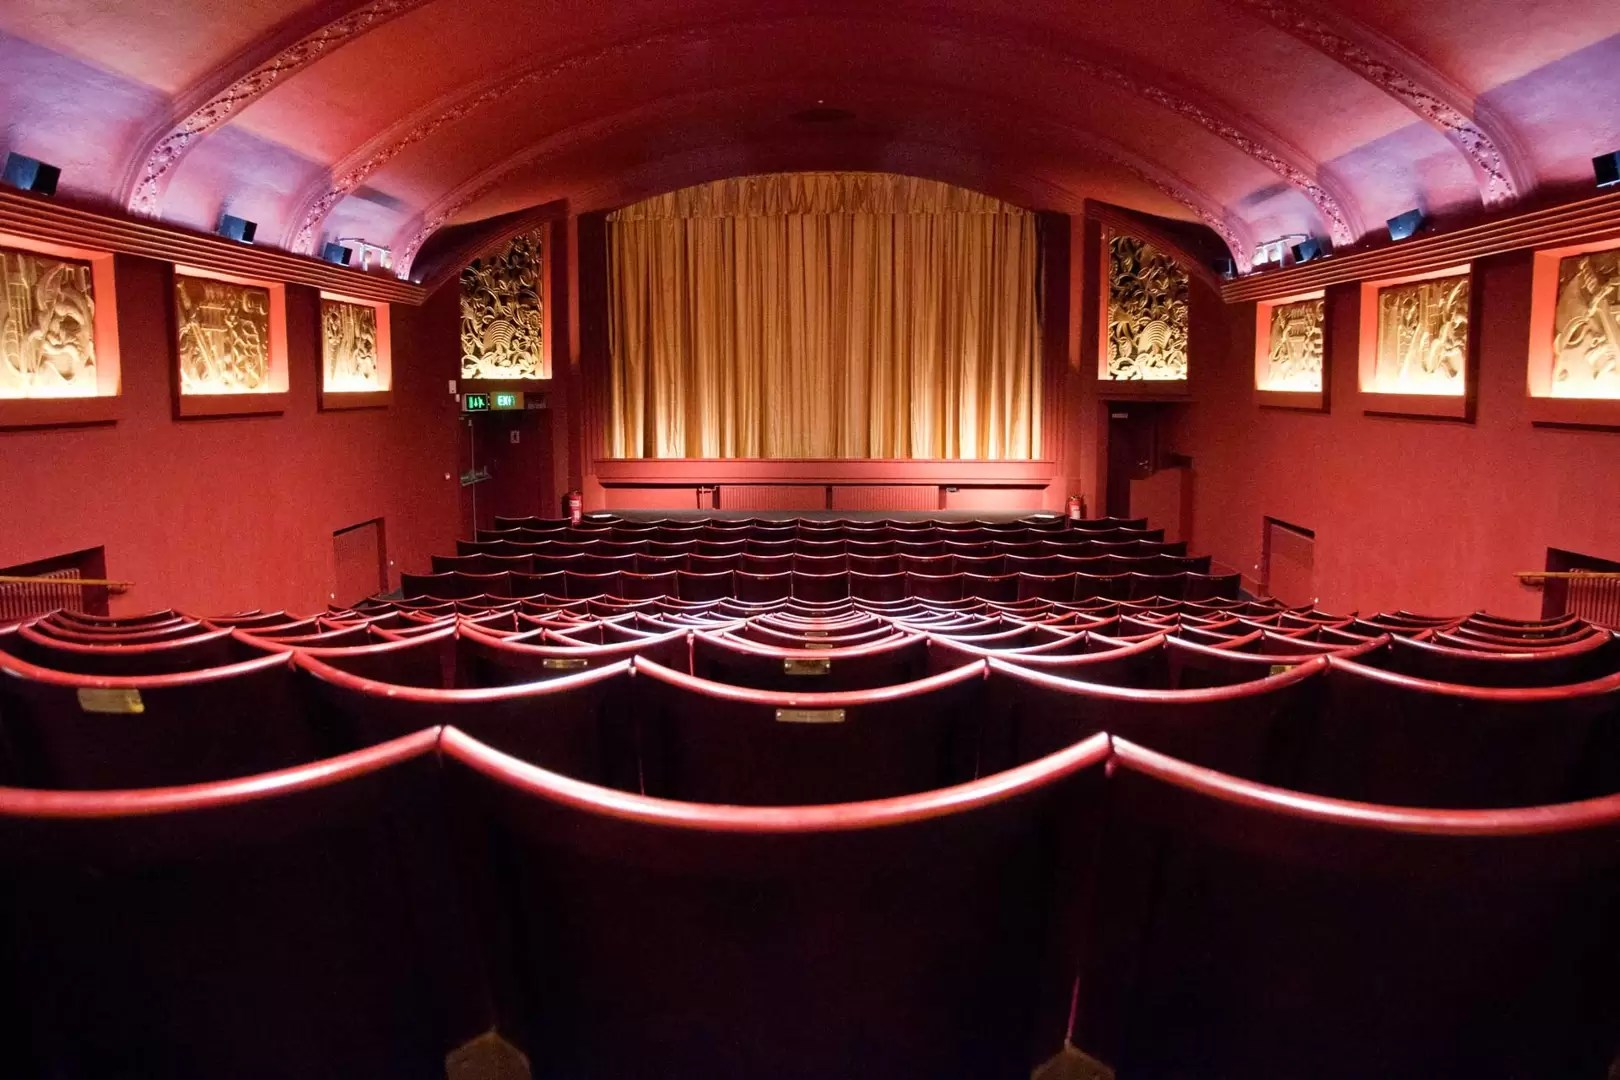 east london sofa cinema animal print bed best independent cinemas in great places to watch films the